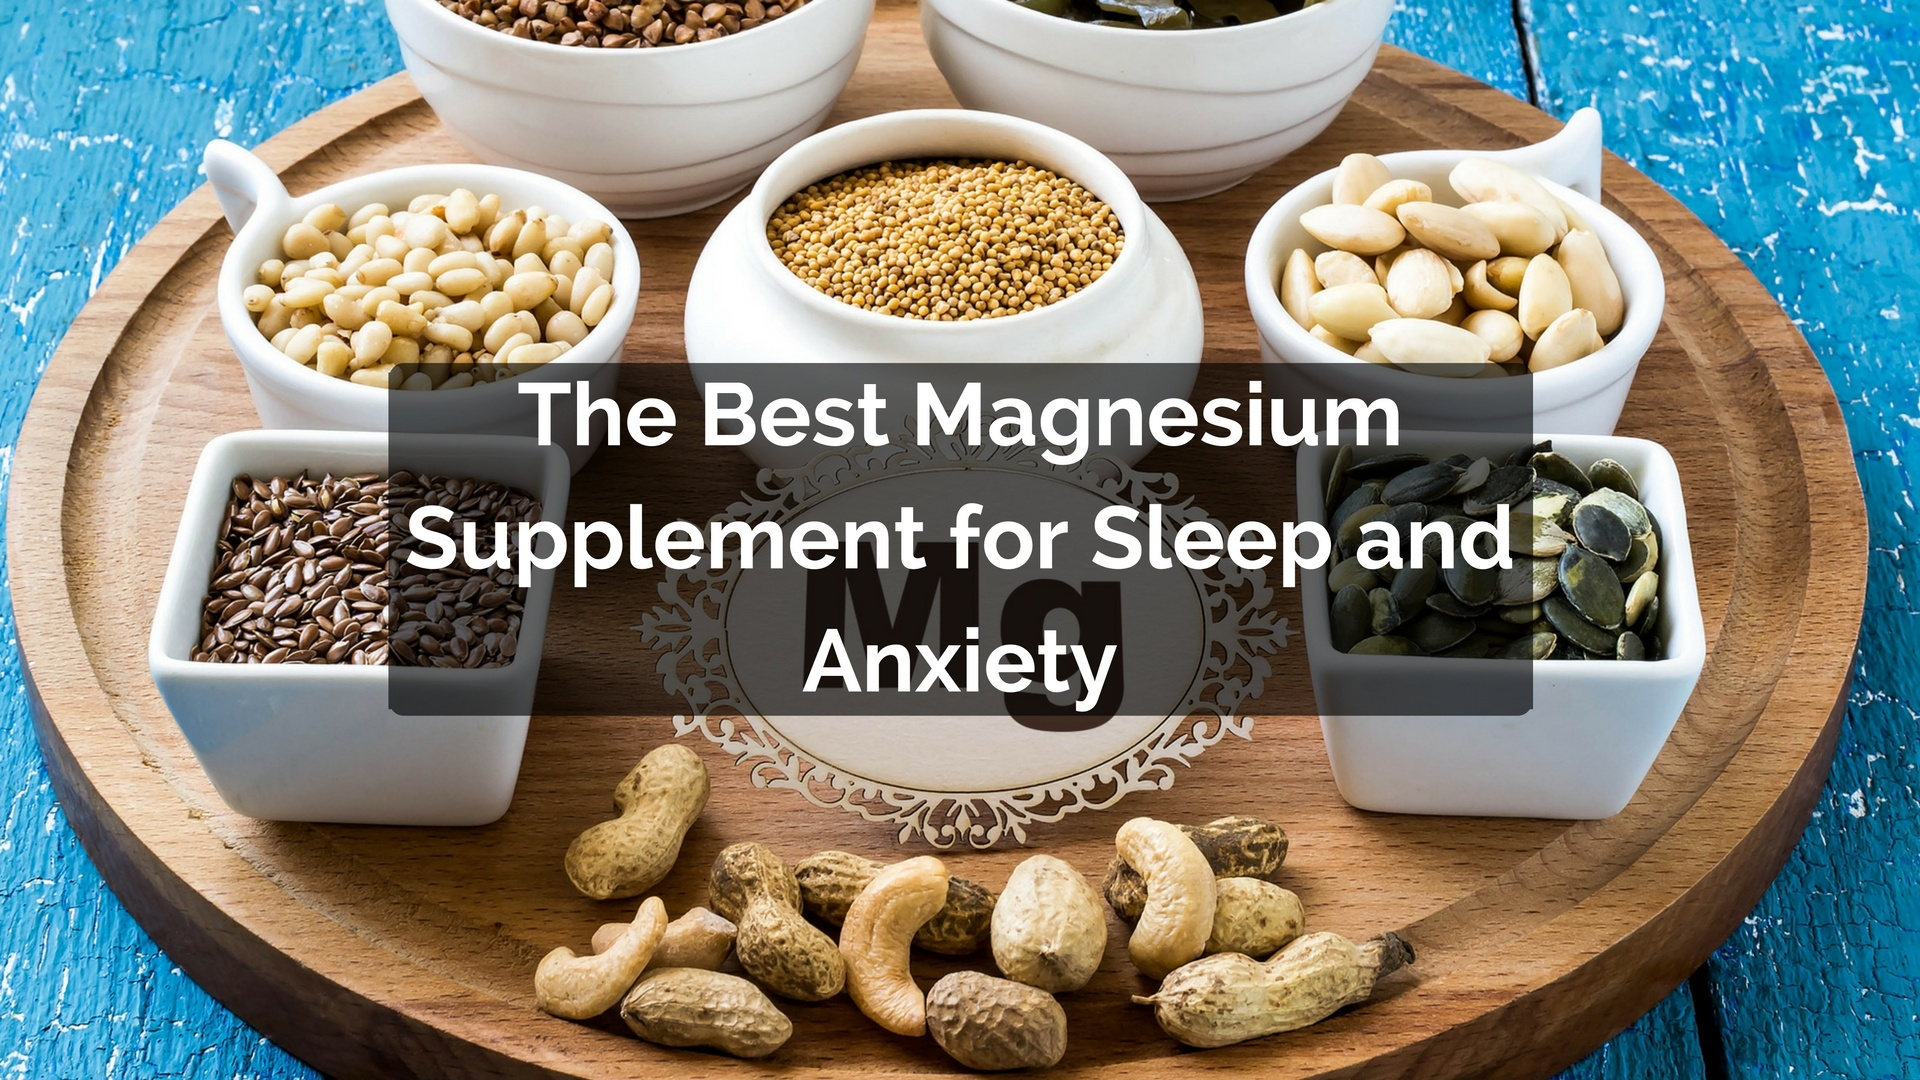 The Best Magnesium Supplement for Sleep and Anxiety